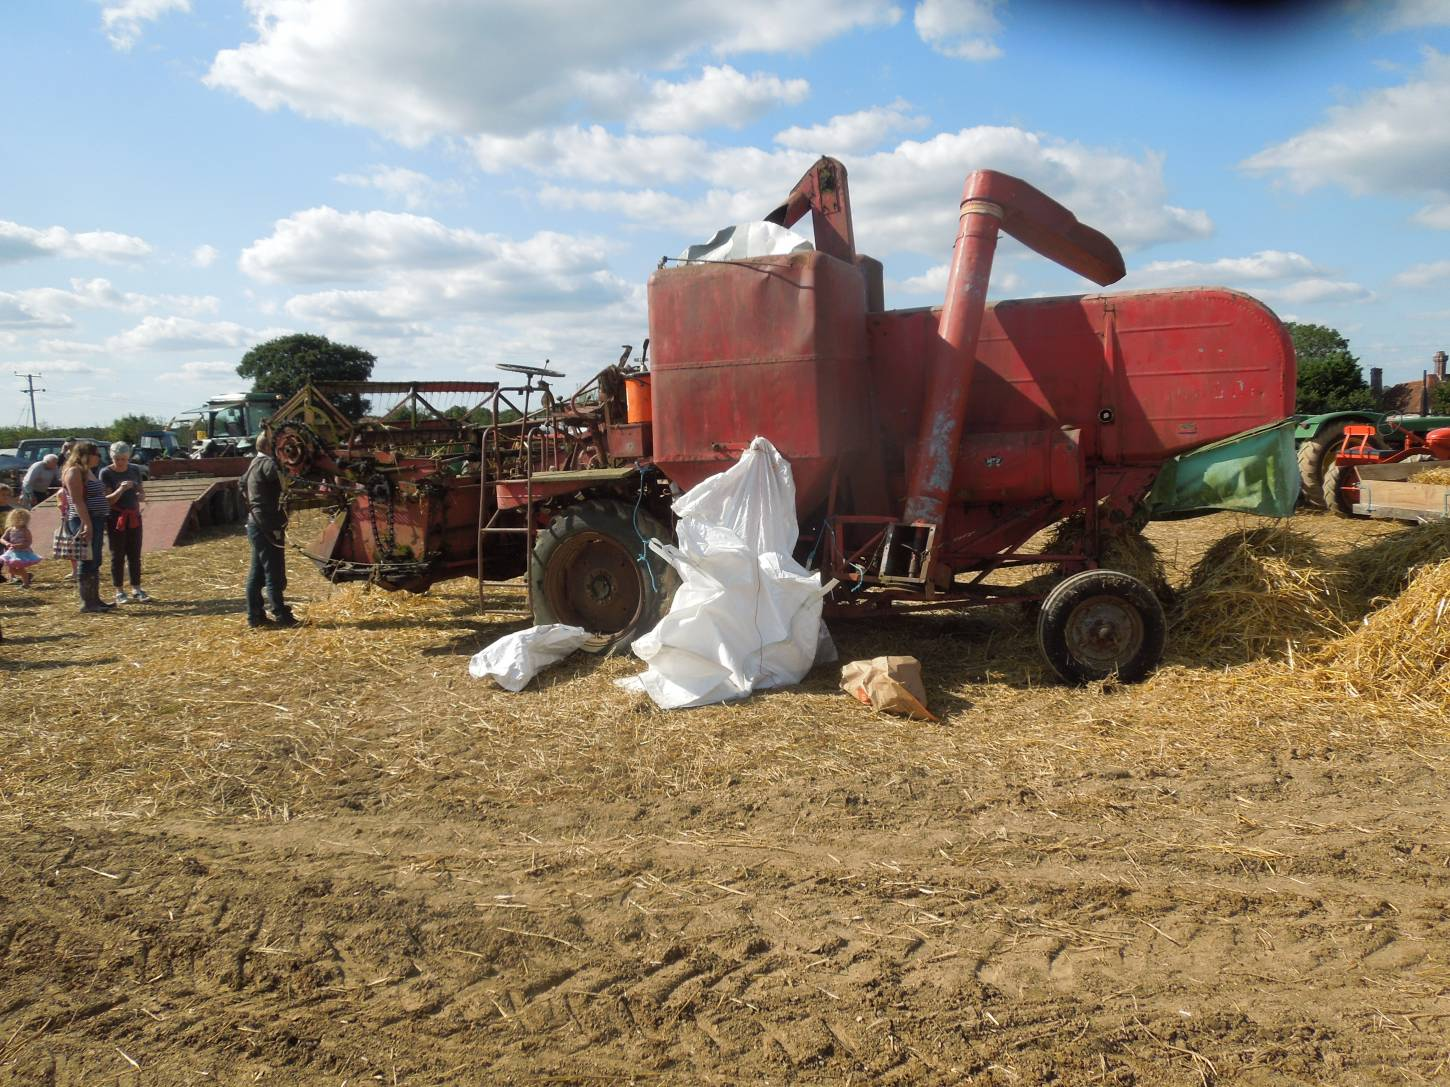 threshing Kent Old Hoary at Townings Farm vintage agricultural show - 3:08pm&nbsp;6<sup>th</sup>&nbsp;Sep.&nbsp;'15